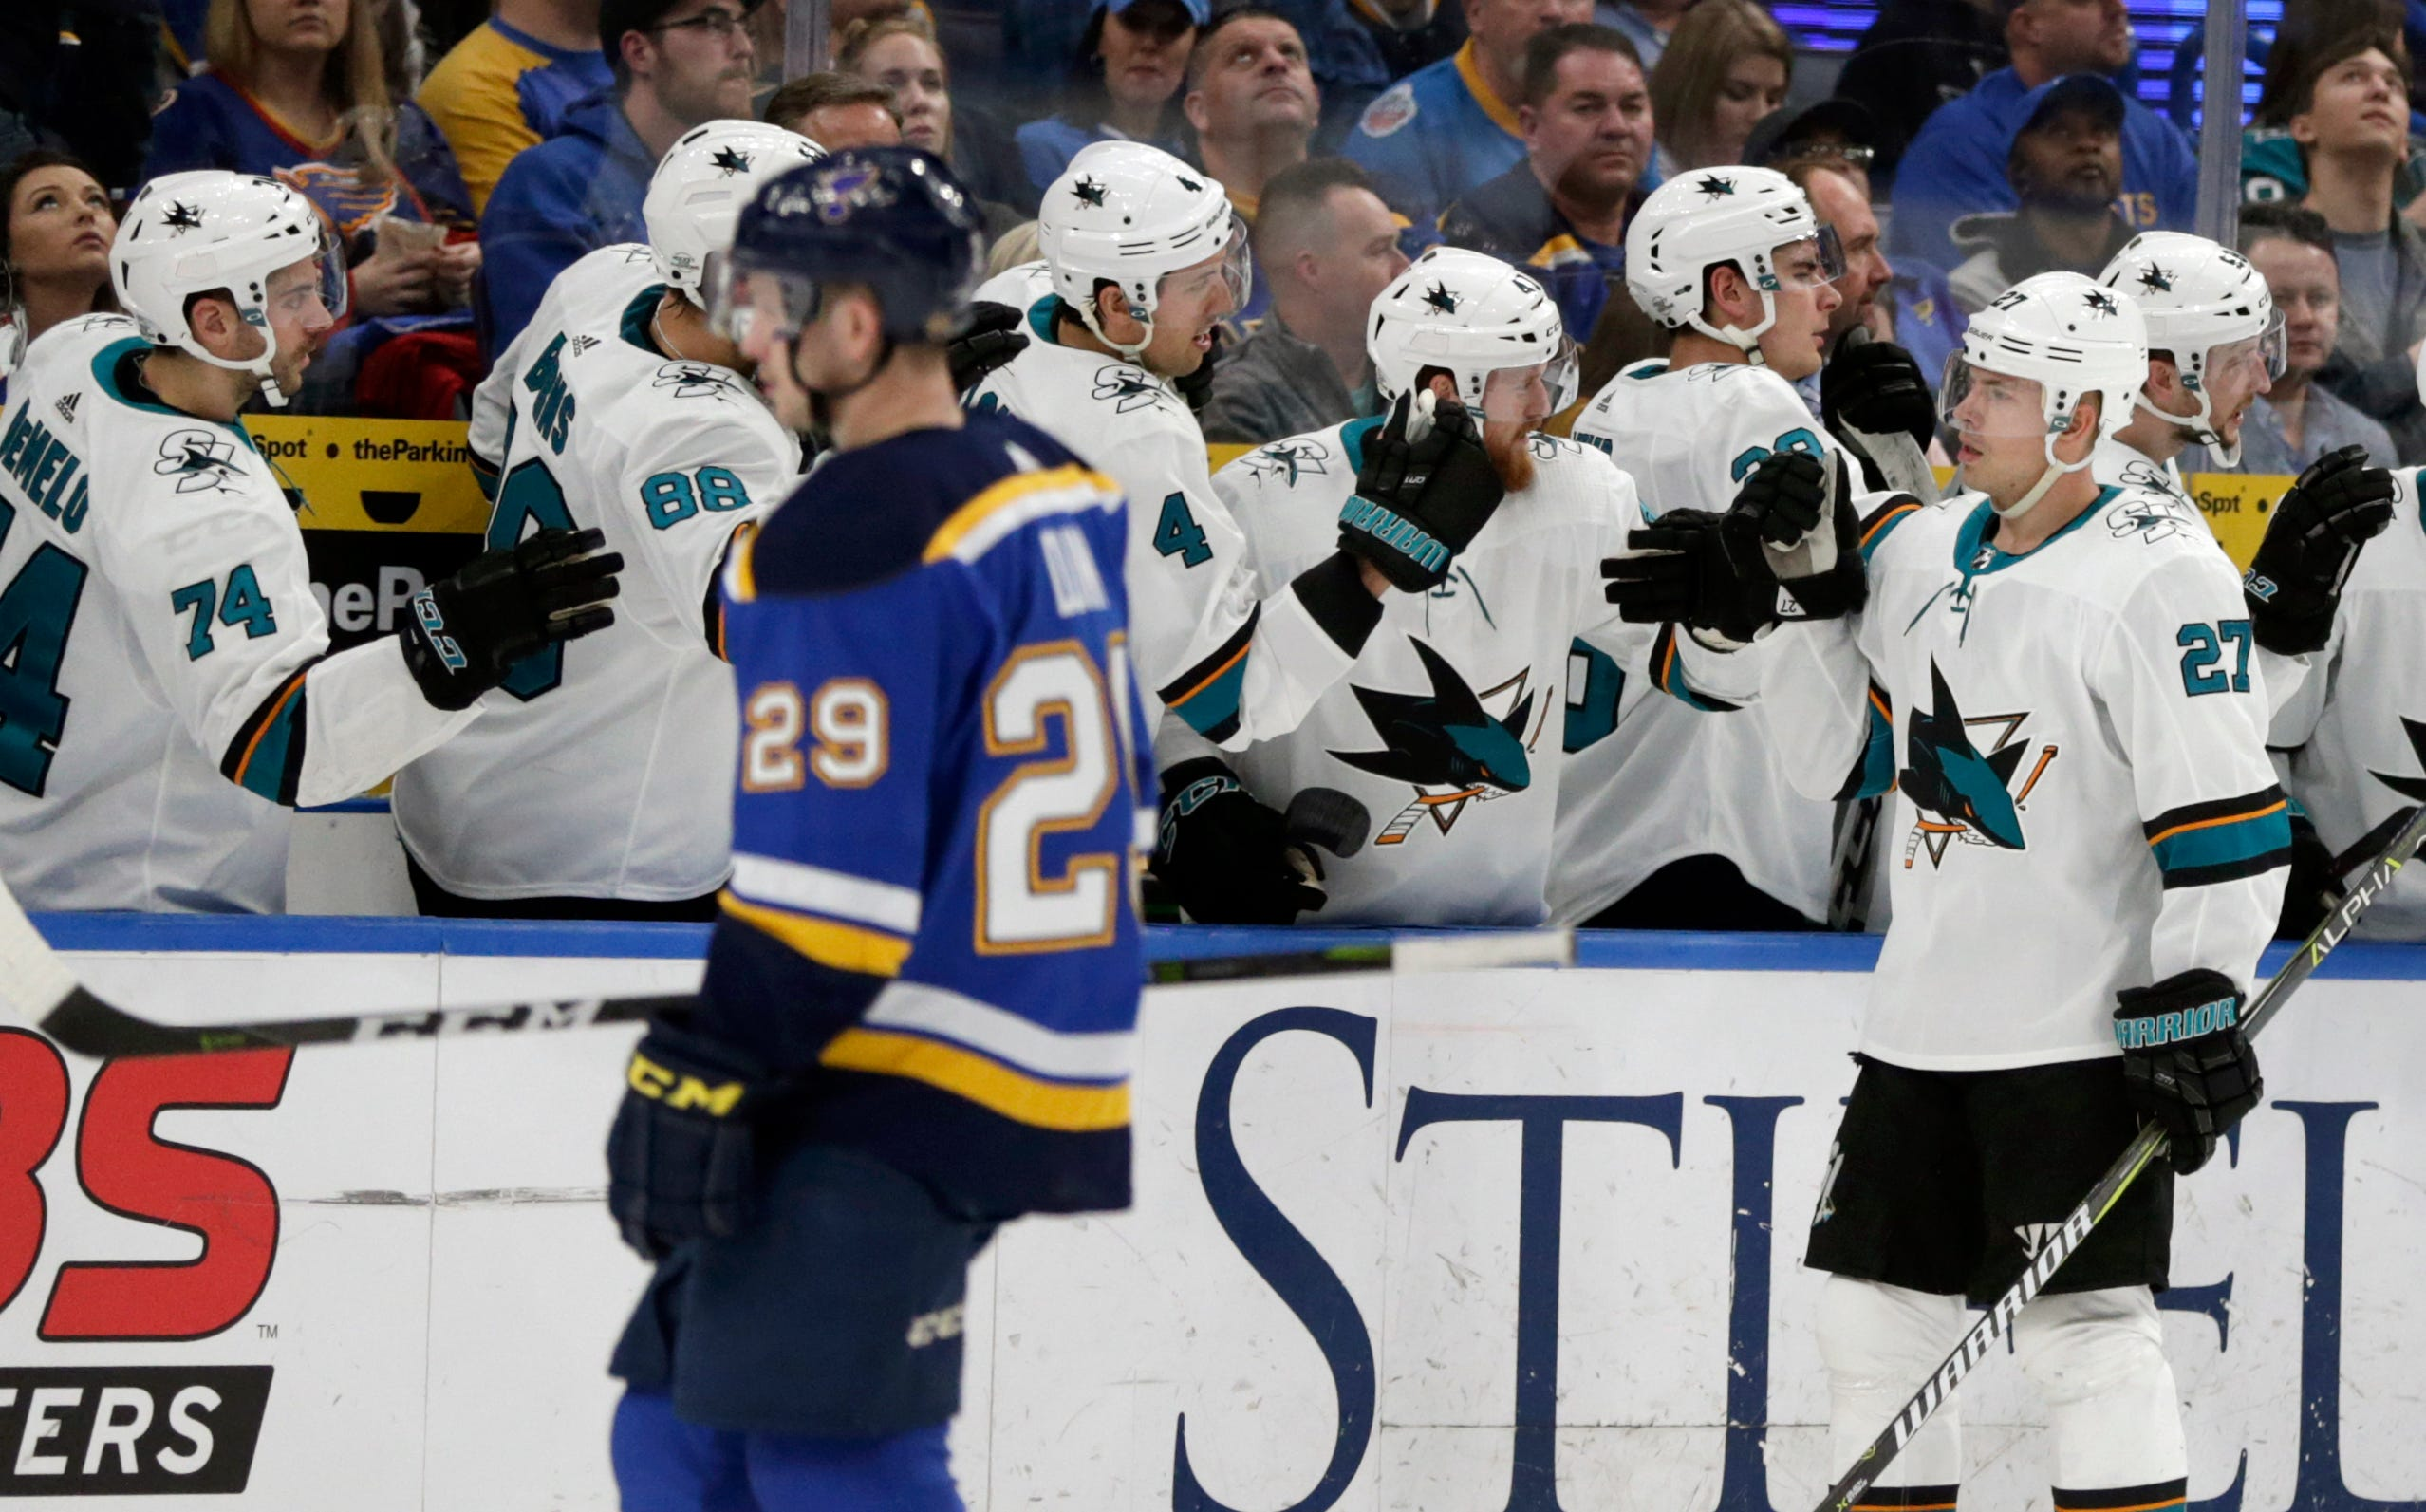 Couture, Boedker send Sharks to 3-2 win over Blues